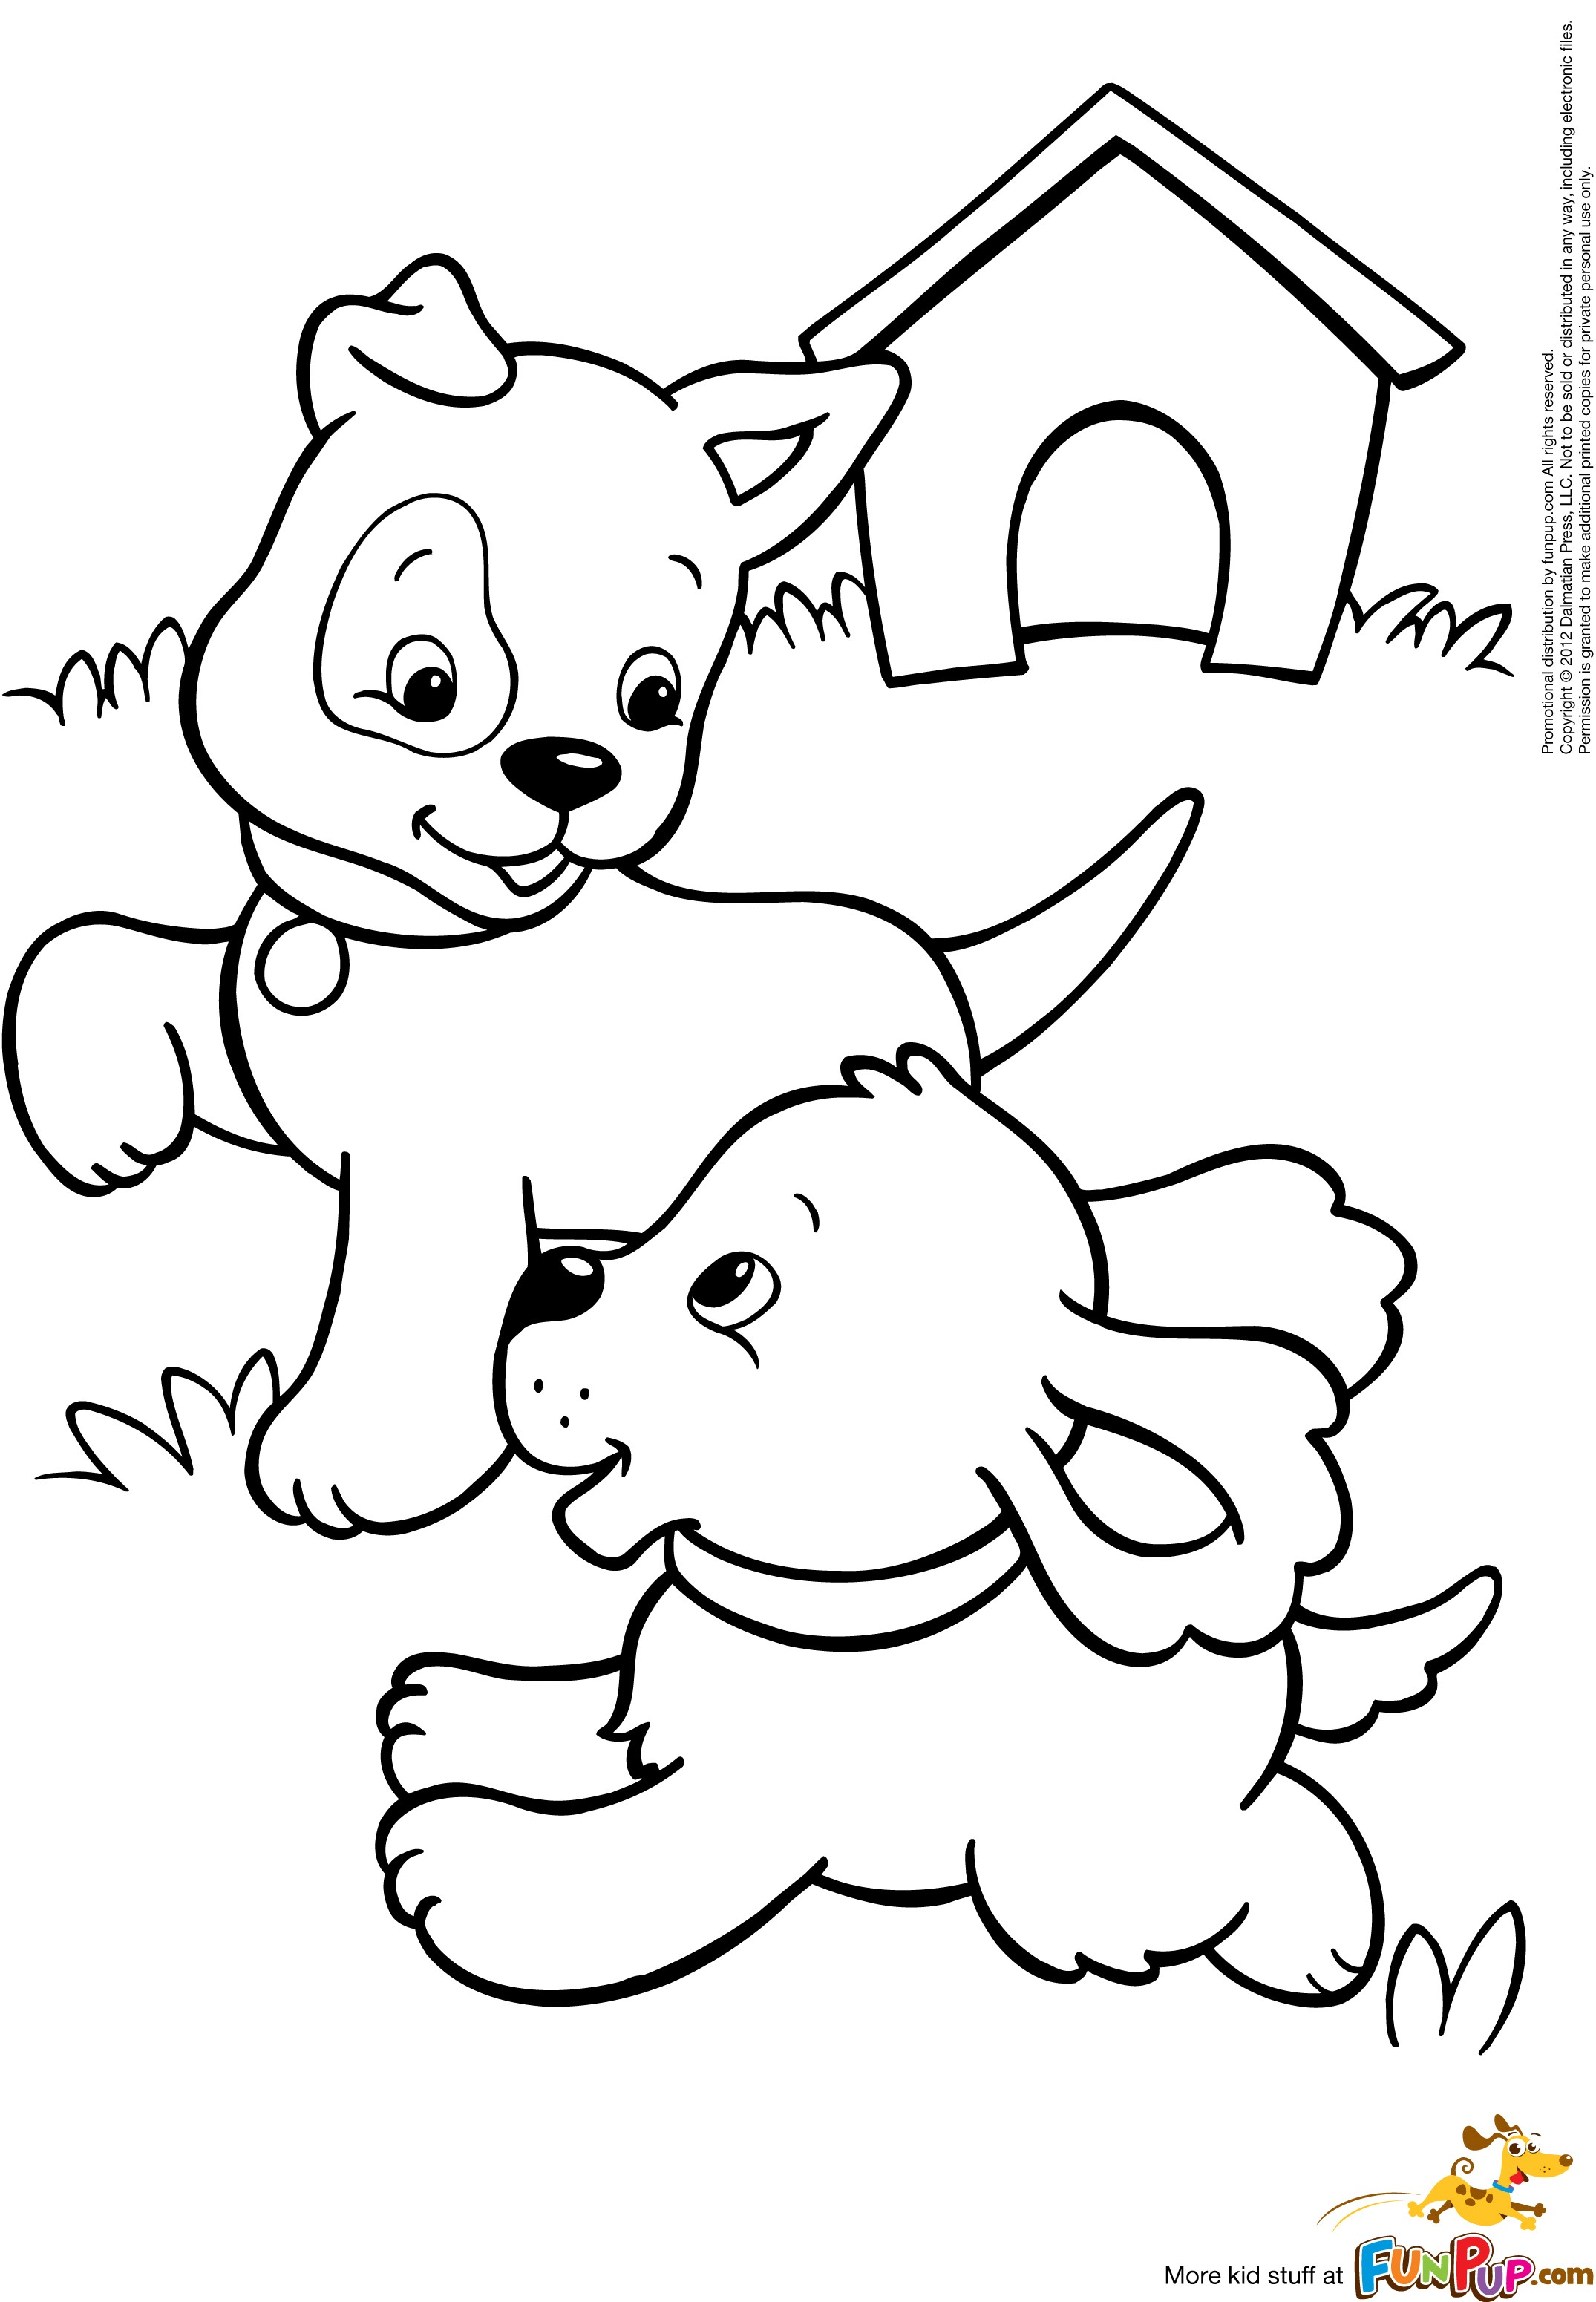 coloring sheet dog sad puppy coloring pages at getcoloringscom free sheet coloring dog